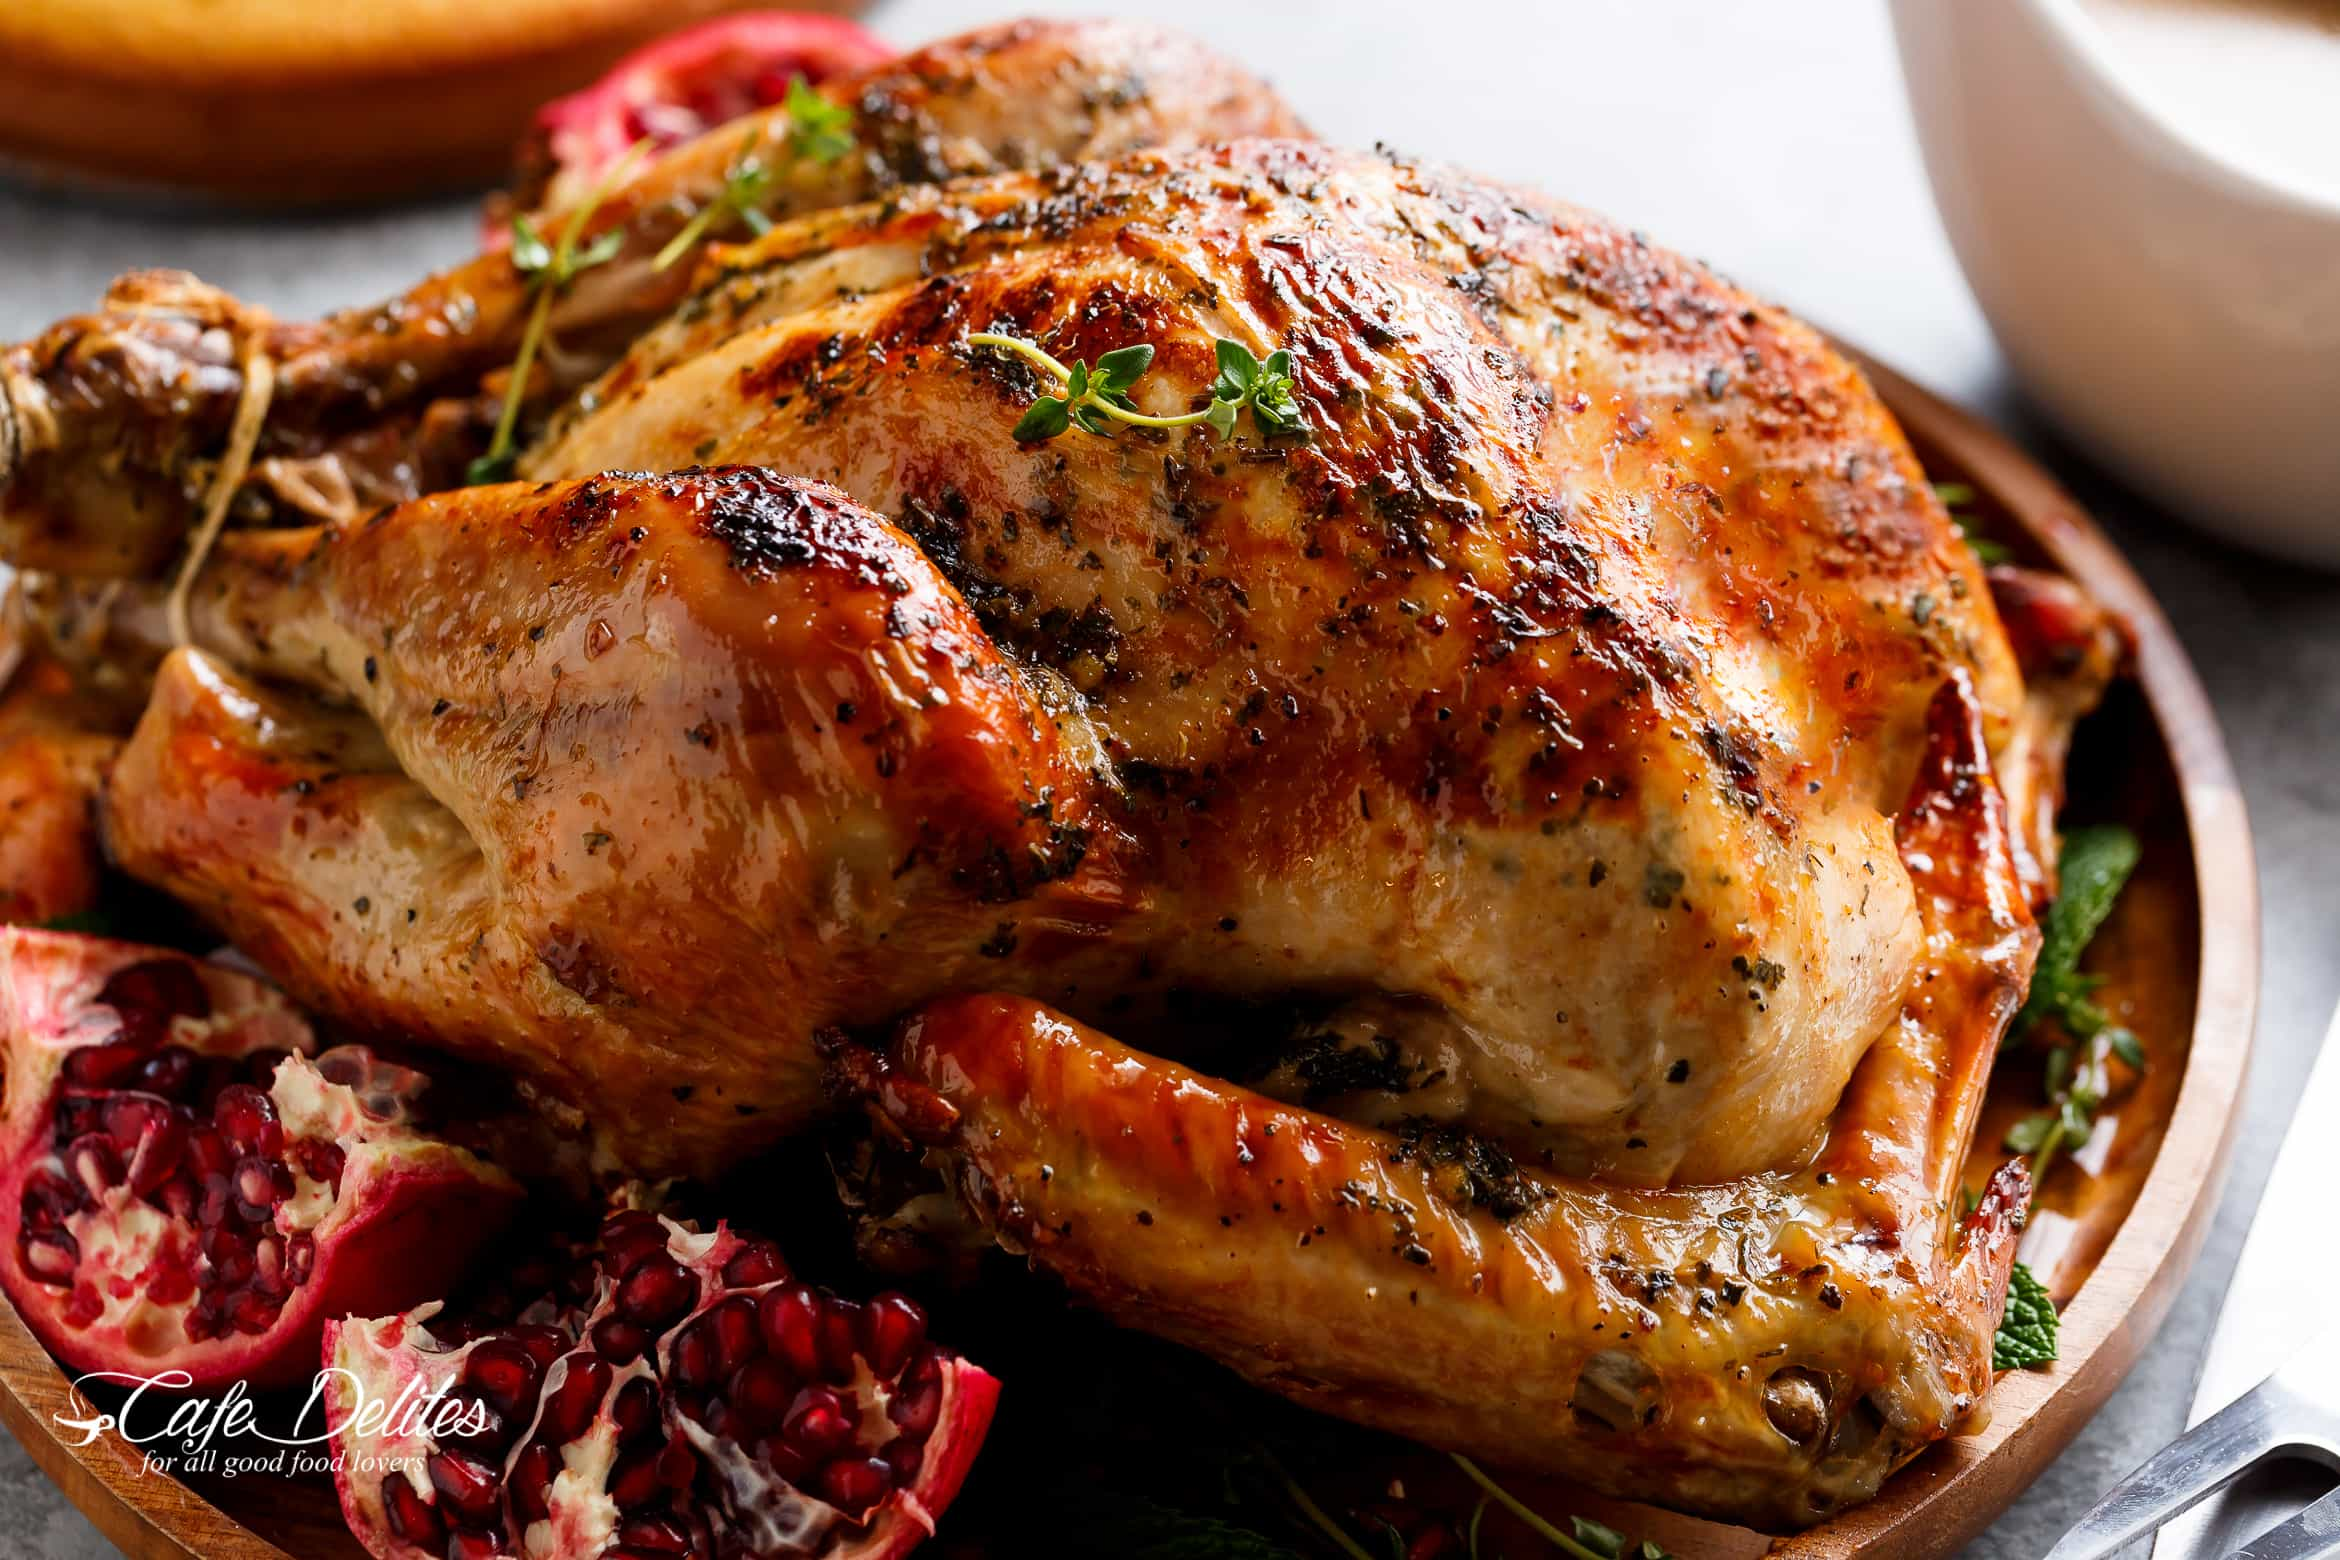 Crispy-Skin-Slow-Cooker-Turkey-IMAGE-24.jpg